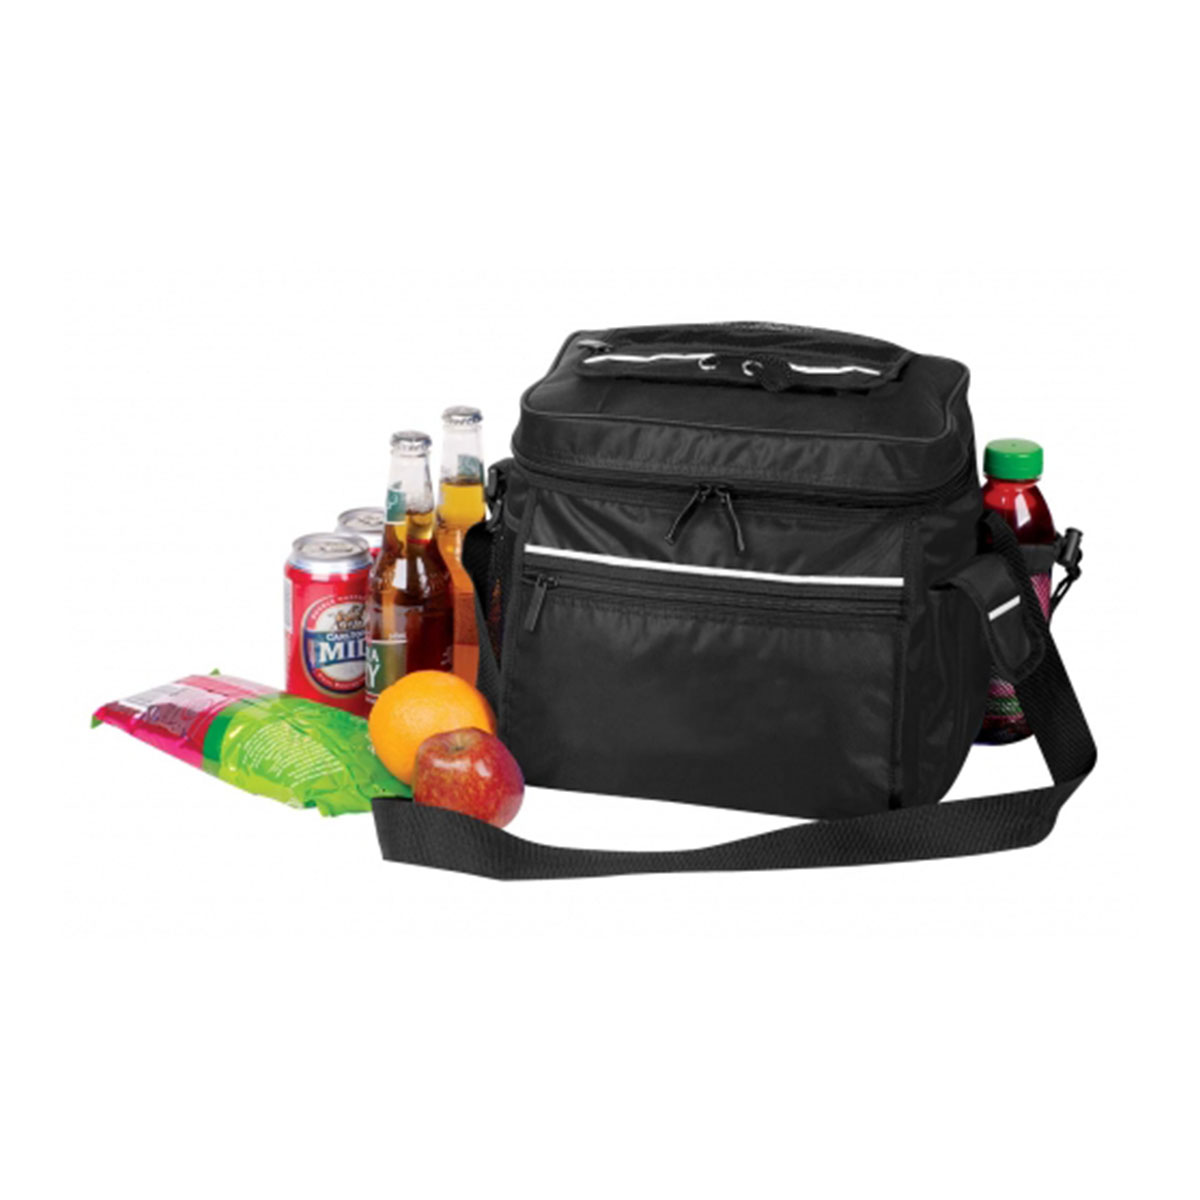 Cooler Bag-Black / White